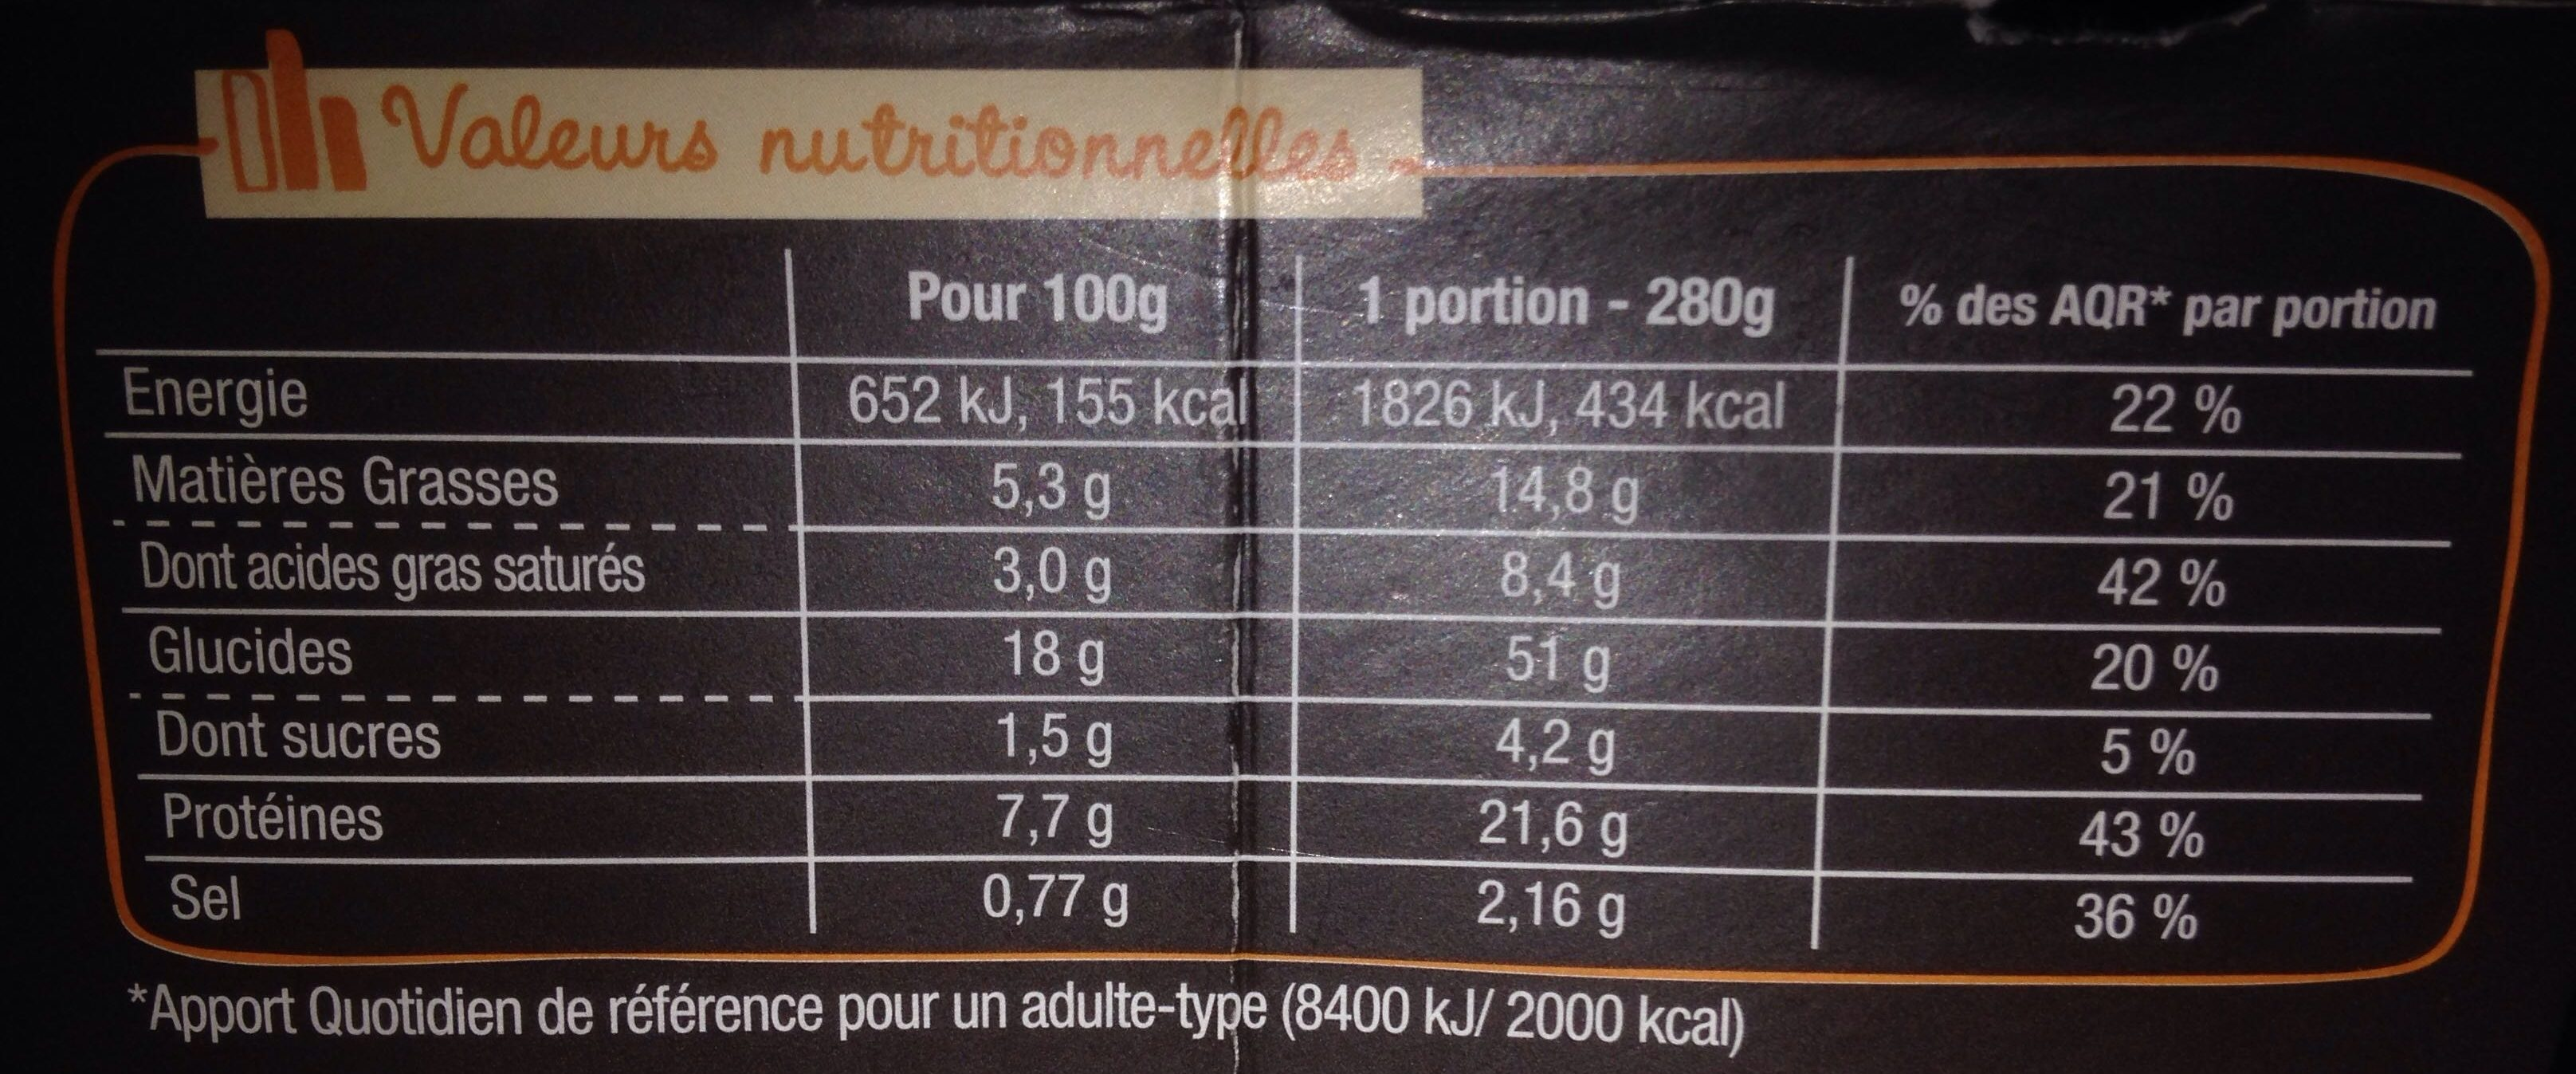 CremioBox - Poulet à la crème - Nutrition facts